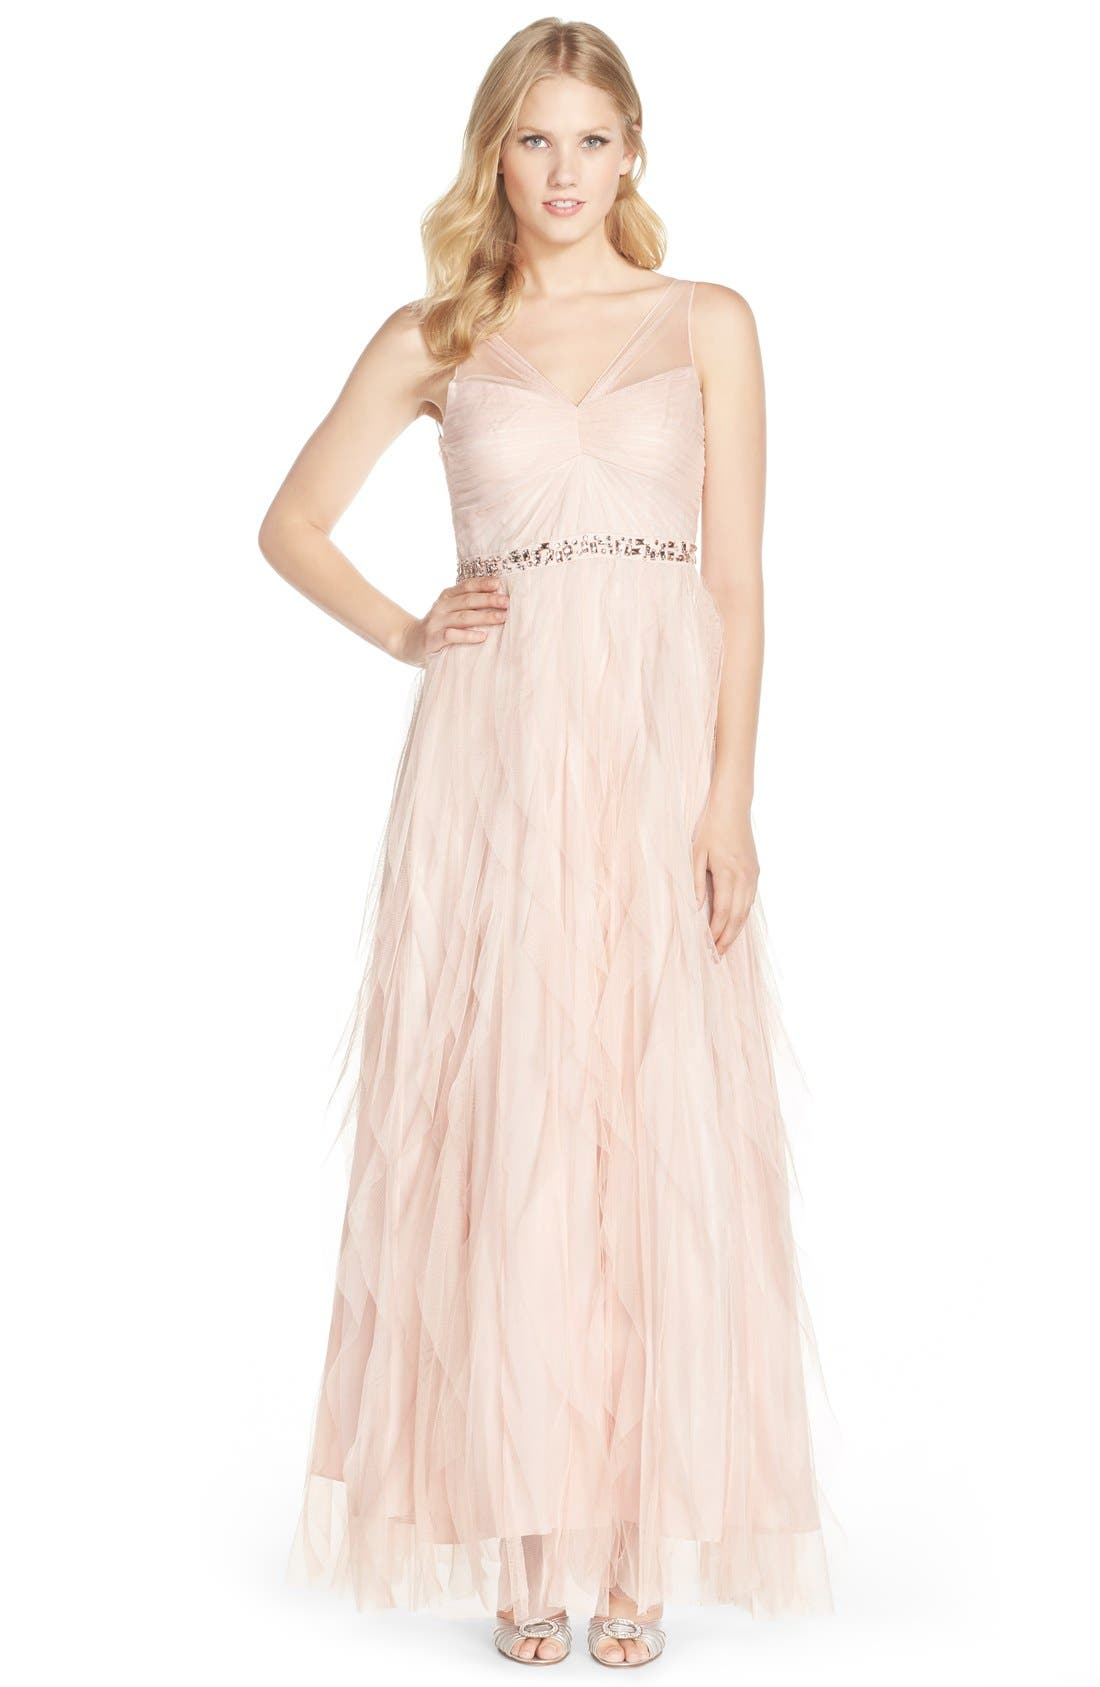 Alternate Image 1 Selected - Adrianna Papell Embellished Tiered Chiffon Gown